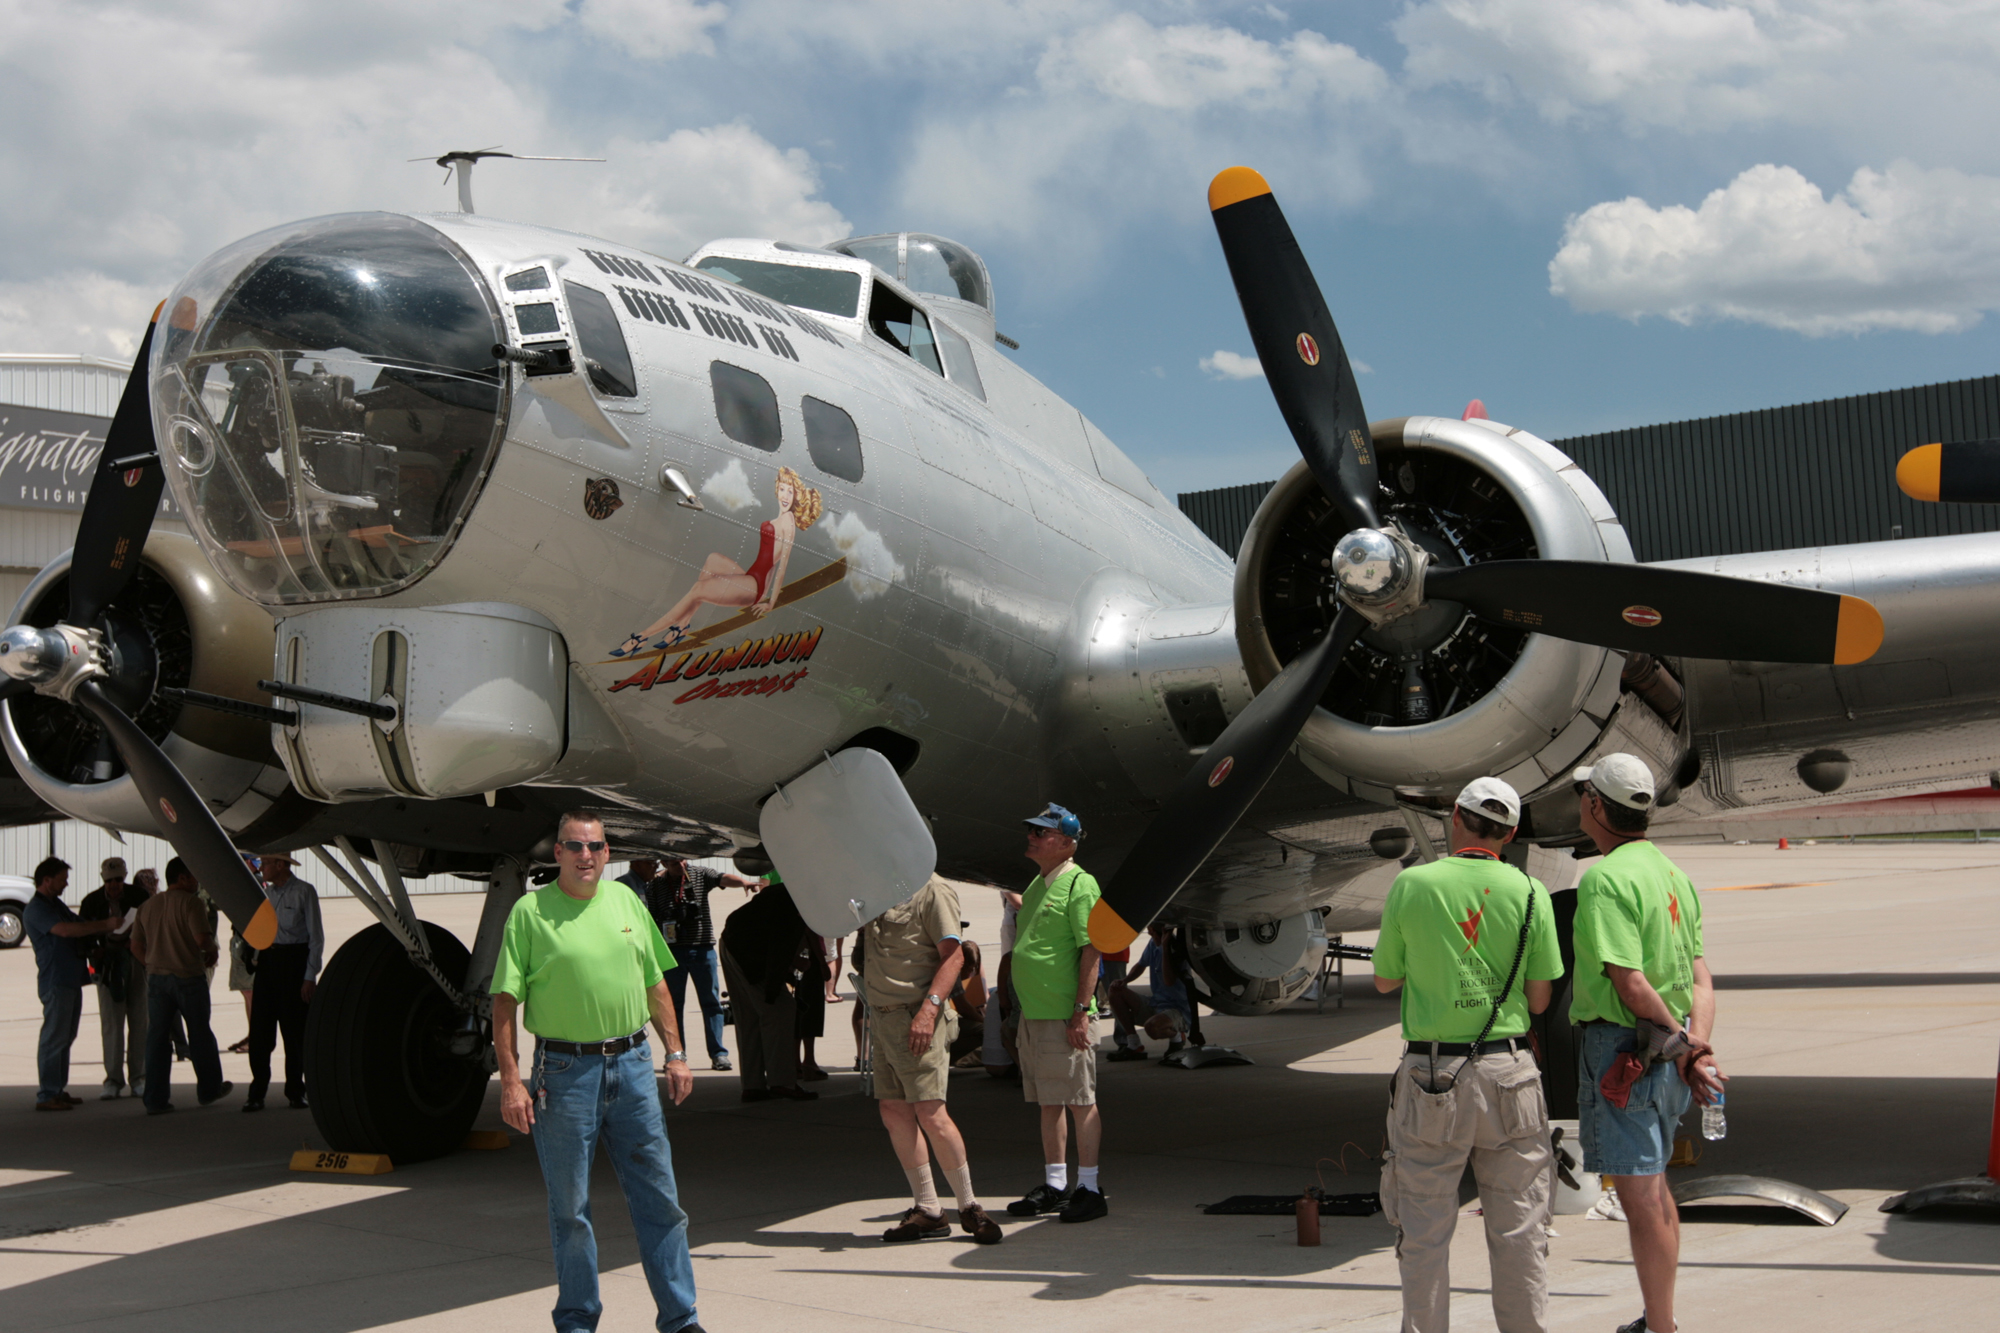 A Trip to Remember: Flying on Aluminum Overcast, EAA's B-17G Flying Fortress